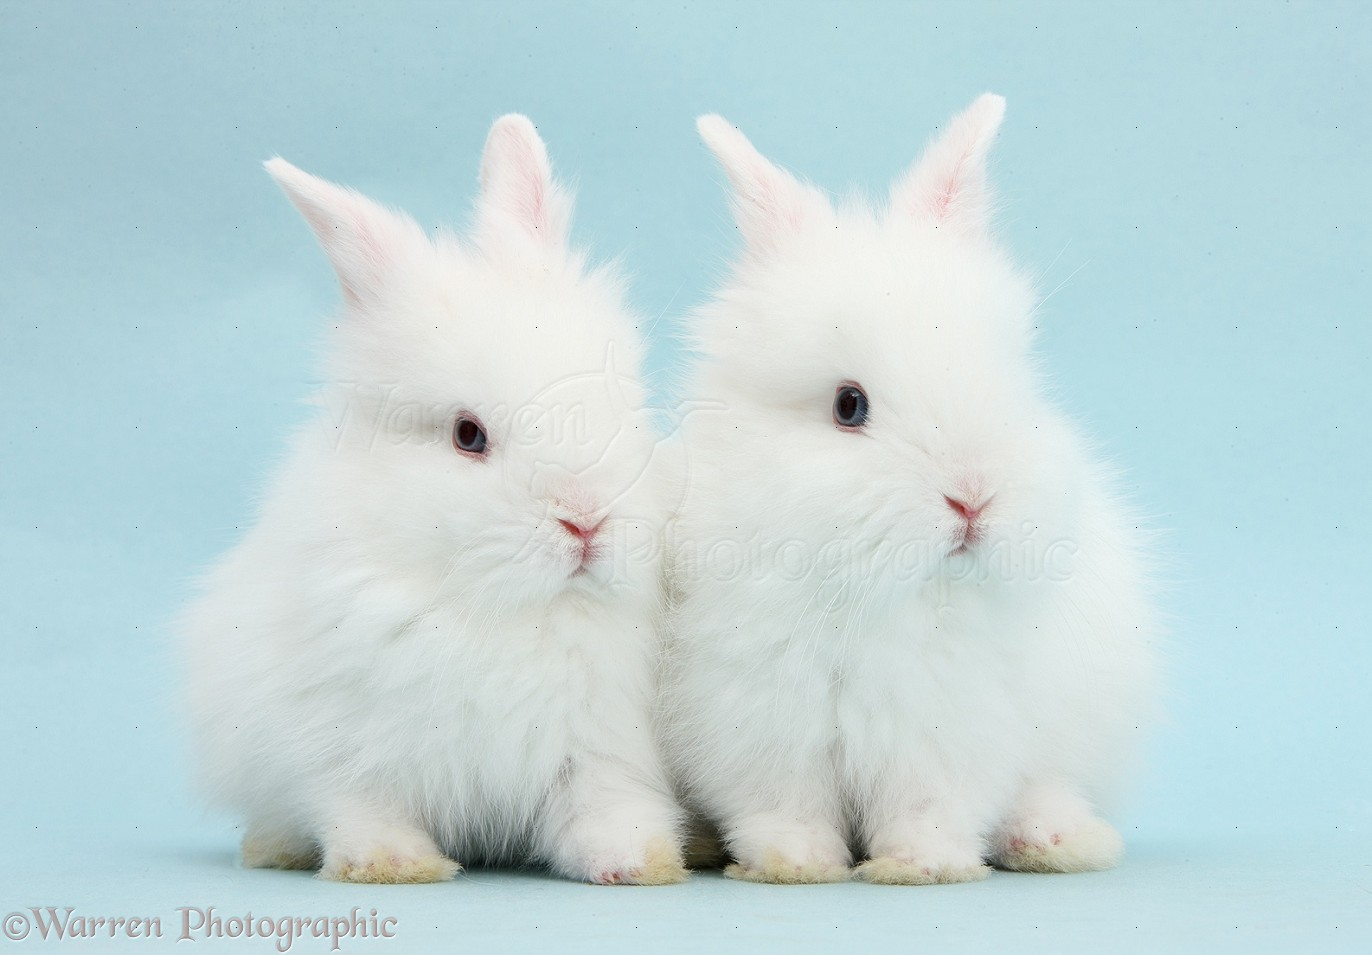 Two cute blue-eyed white baby bunnies photo WP40218 - photo#20